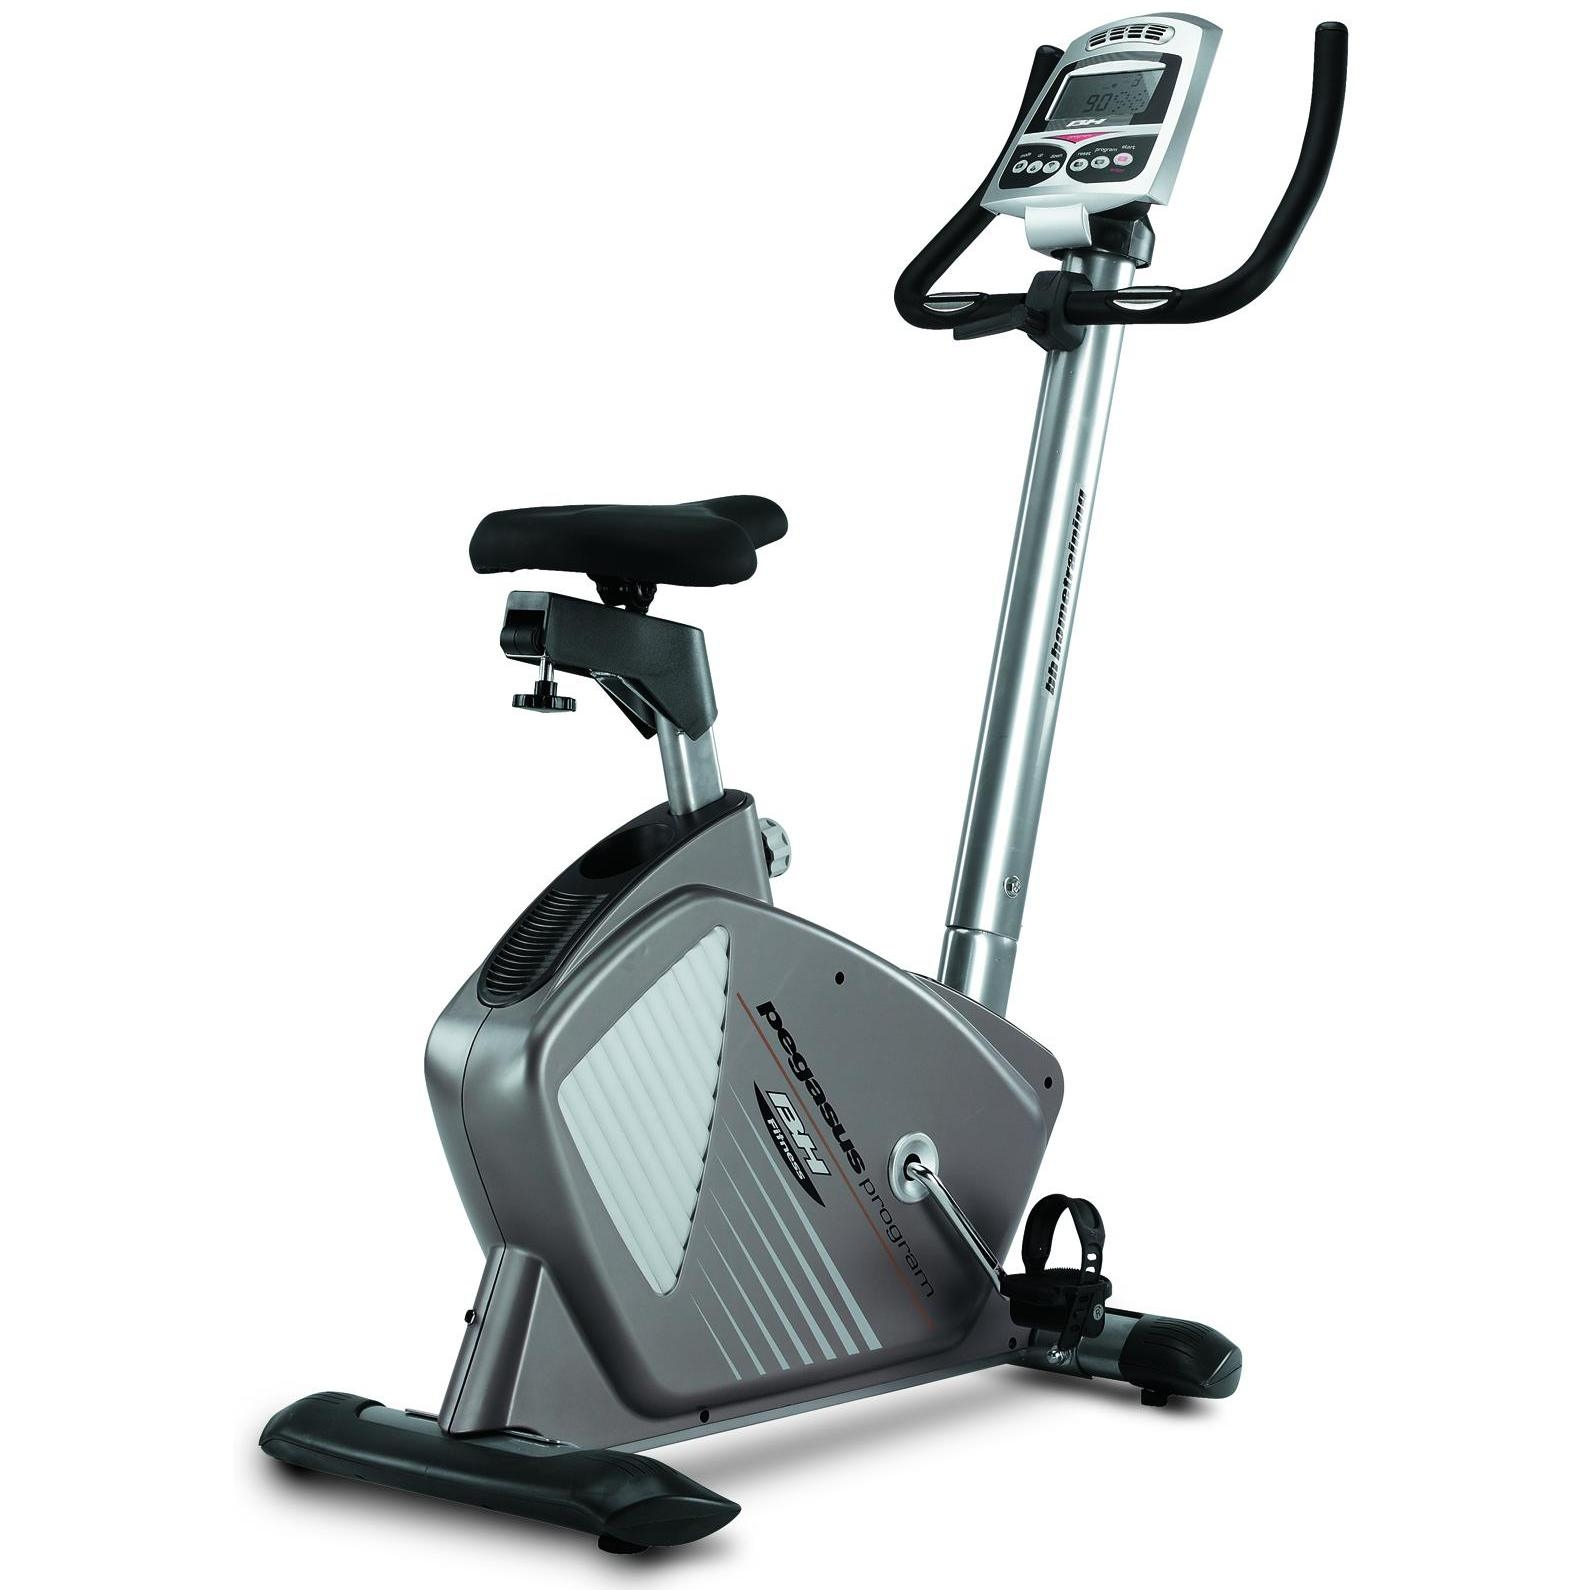 Products to the York Fitness 2 In 1 Exercise Bike rowing MachineBicycle Exercise Machine